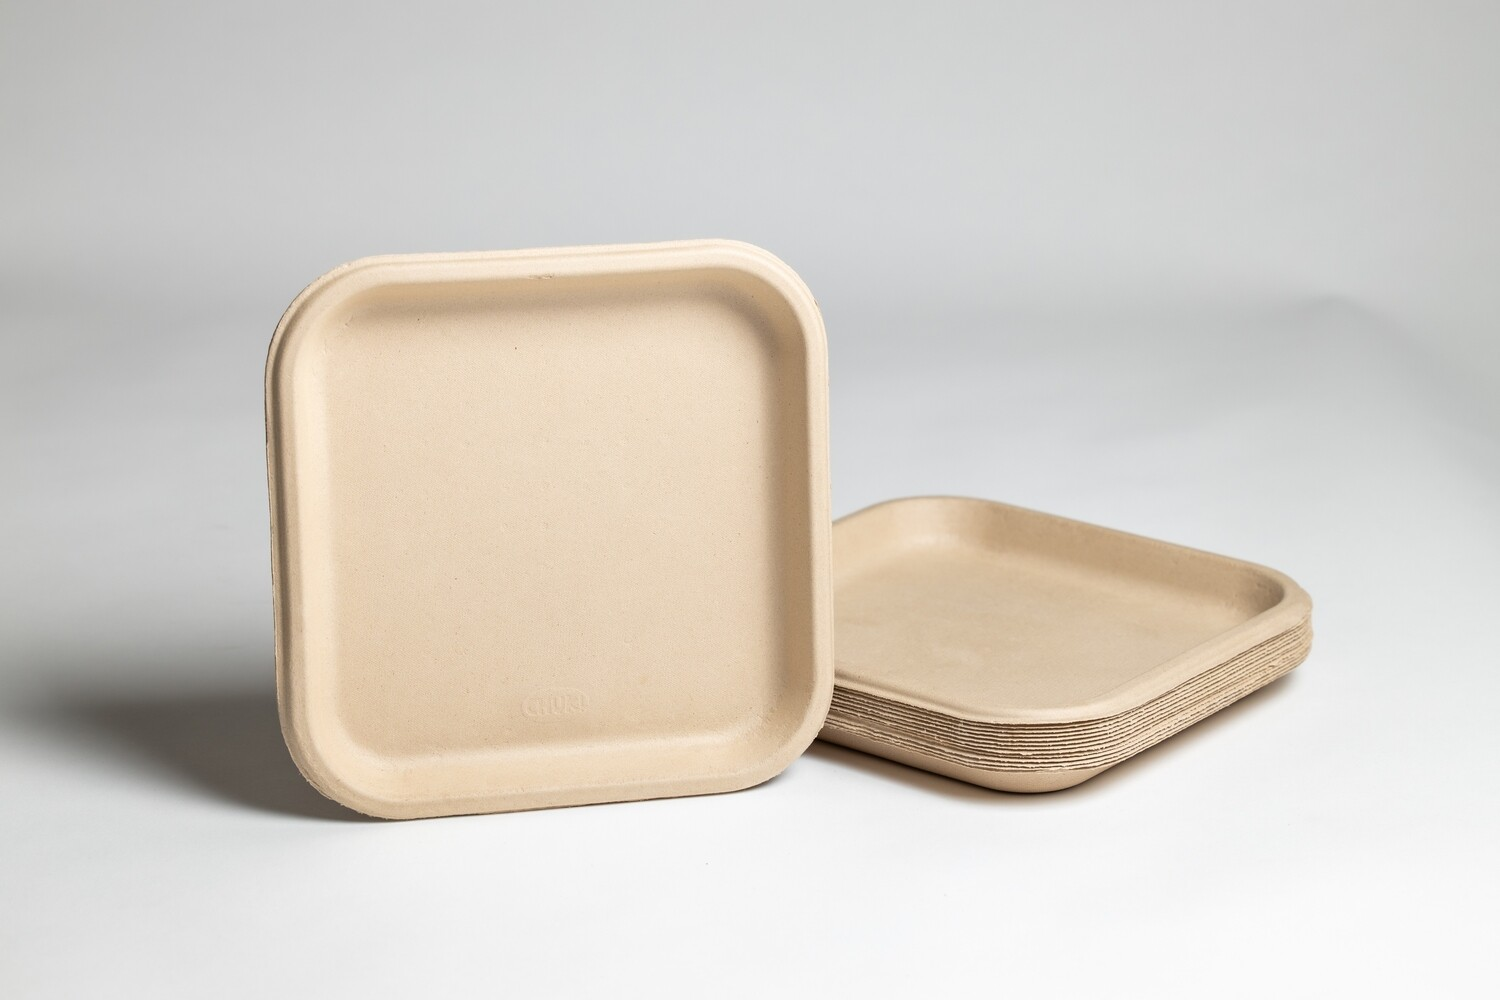 9 Inch Square Compostable Plates | 500 Pieces